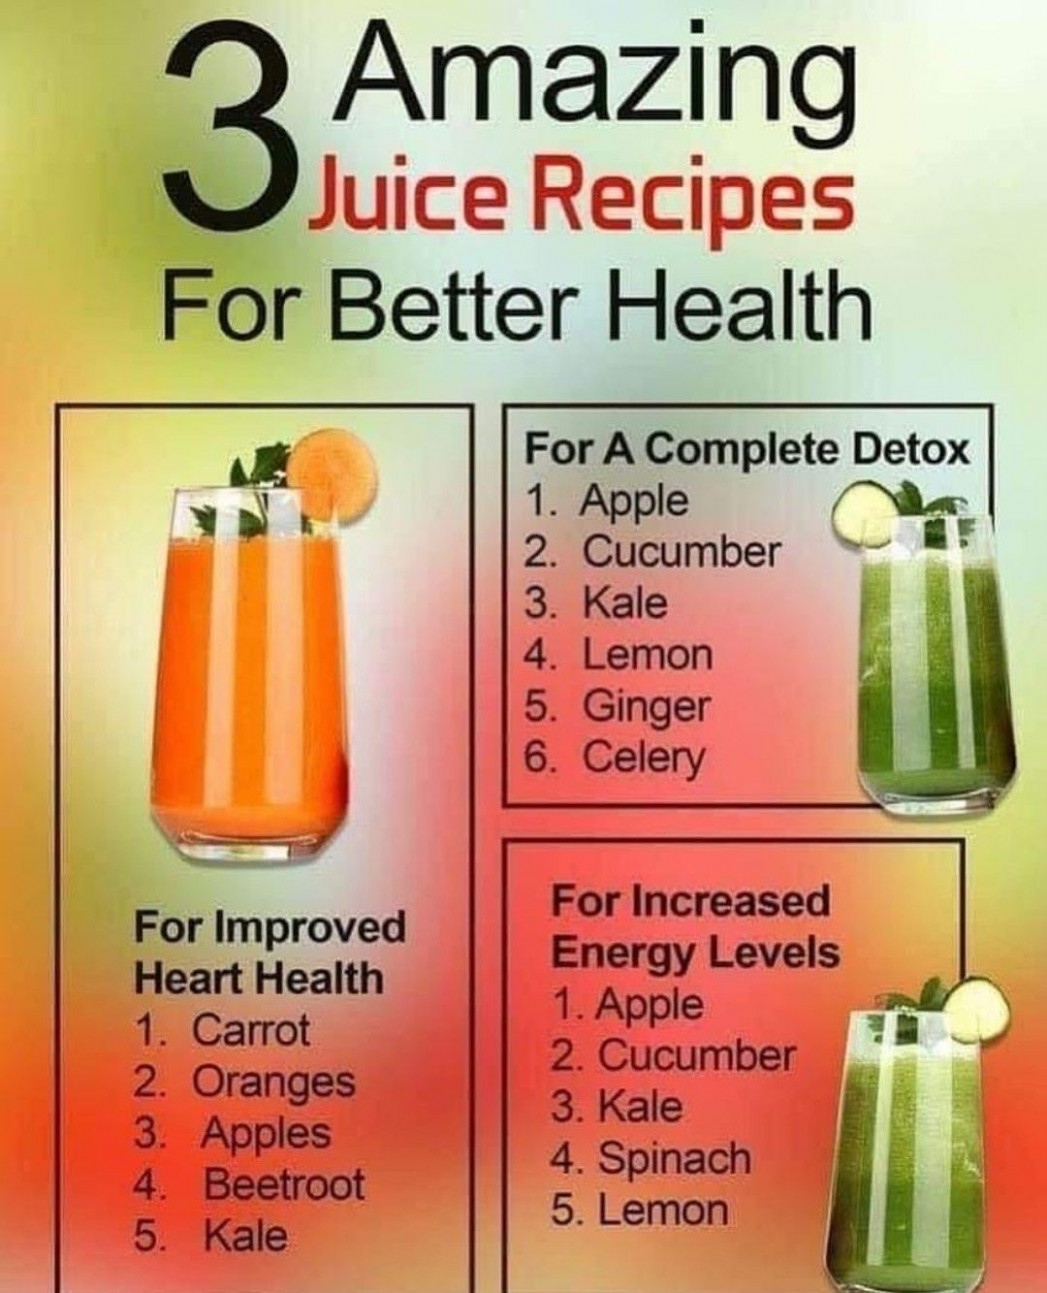 Pin On Detox Juice Recipes  Juices And Smoothies To Cleanse - Healthy Recipes Juicer Weight Loss